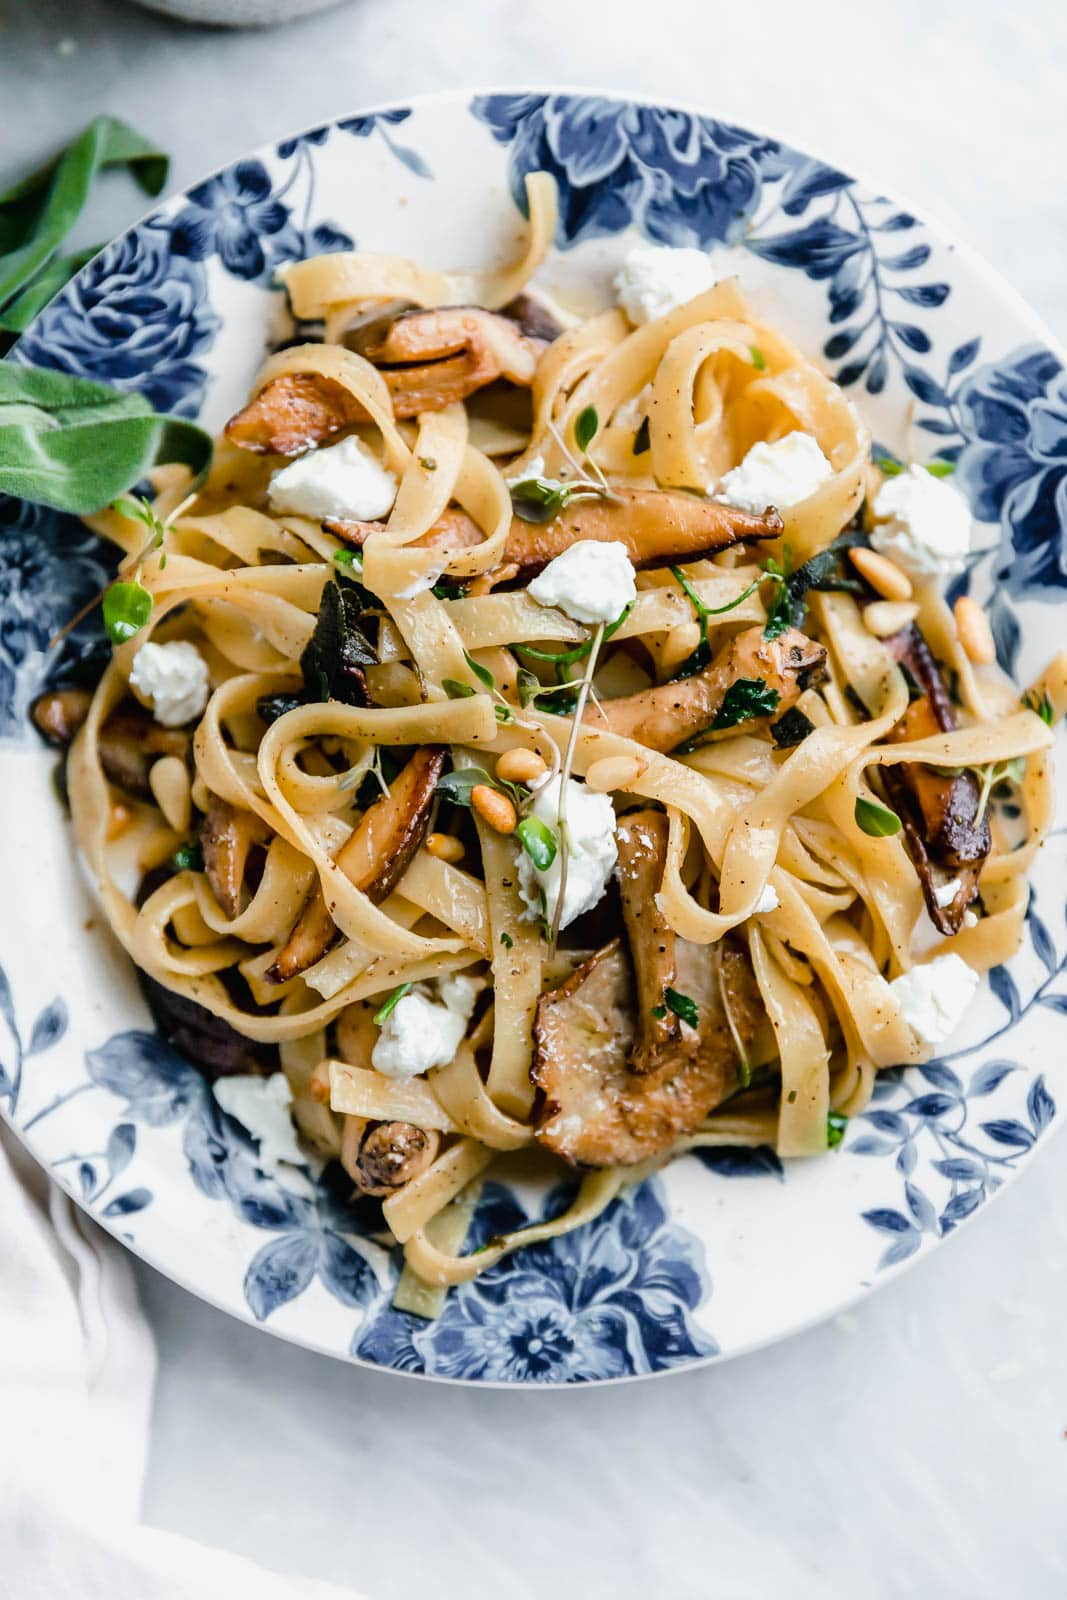 A hearty Herby Mushroom Tagliatelle flavored with brown butter sage shiitakes, toasted pinenuts, and goat cheese. Get in my belly. Stat.